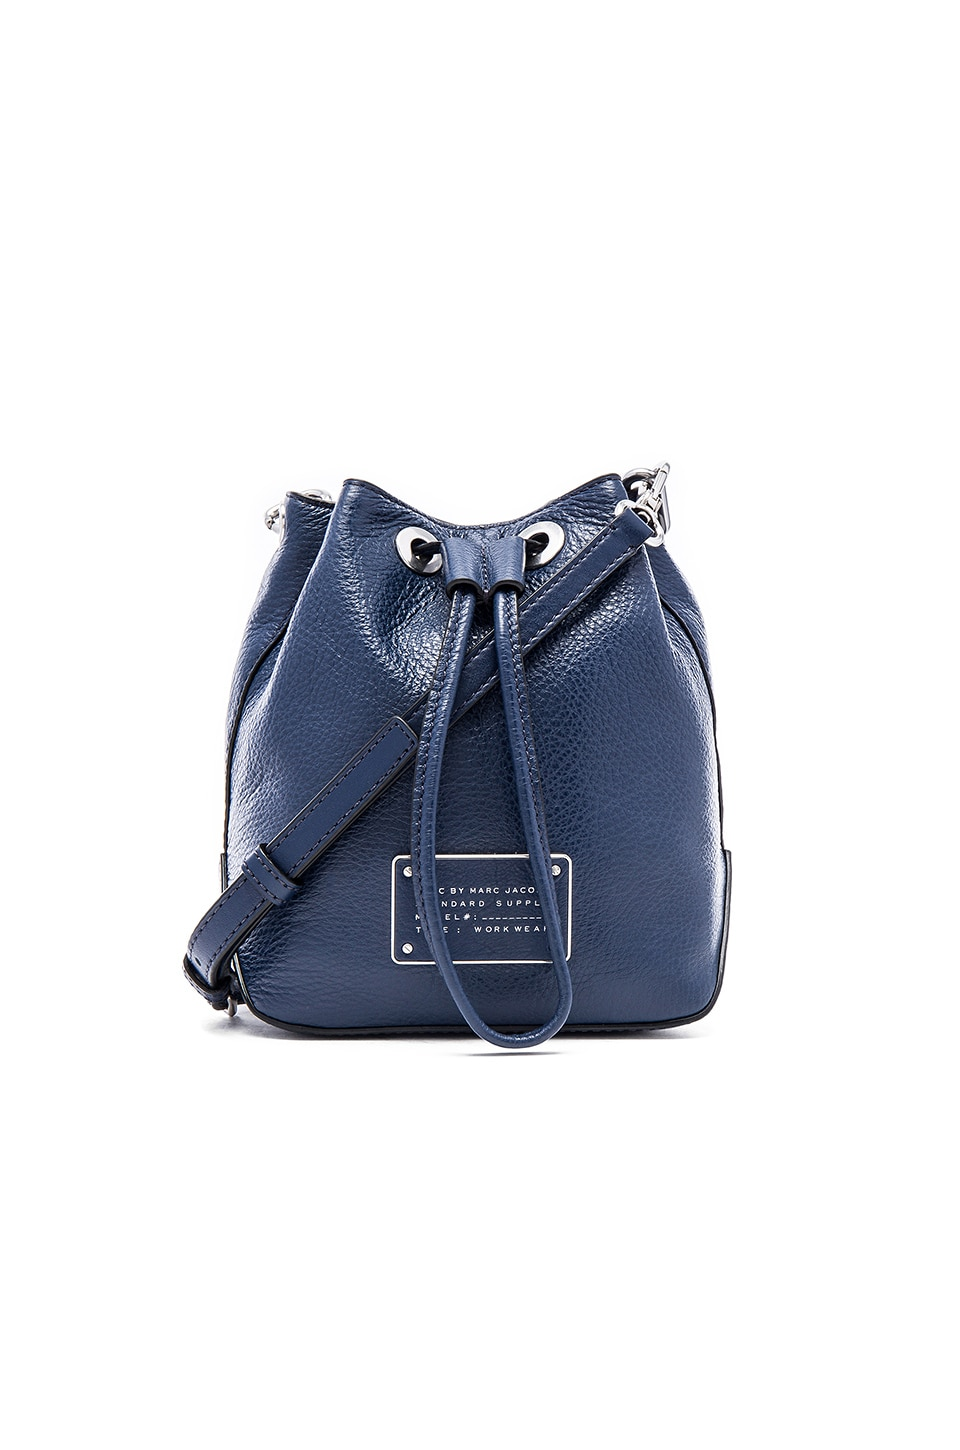 6e04e92f9010 Marc by Marc Jacobs Too Hot To Handle Drawstring Bucket Bag in ...